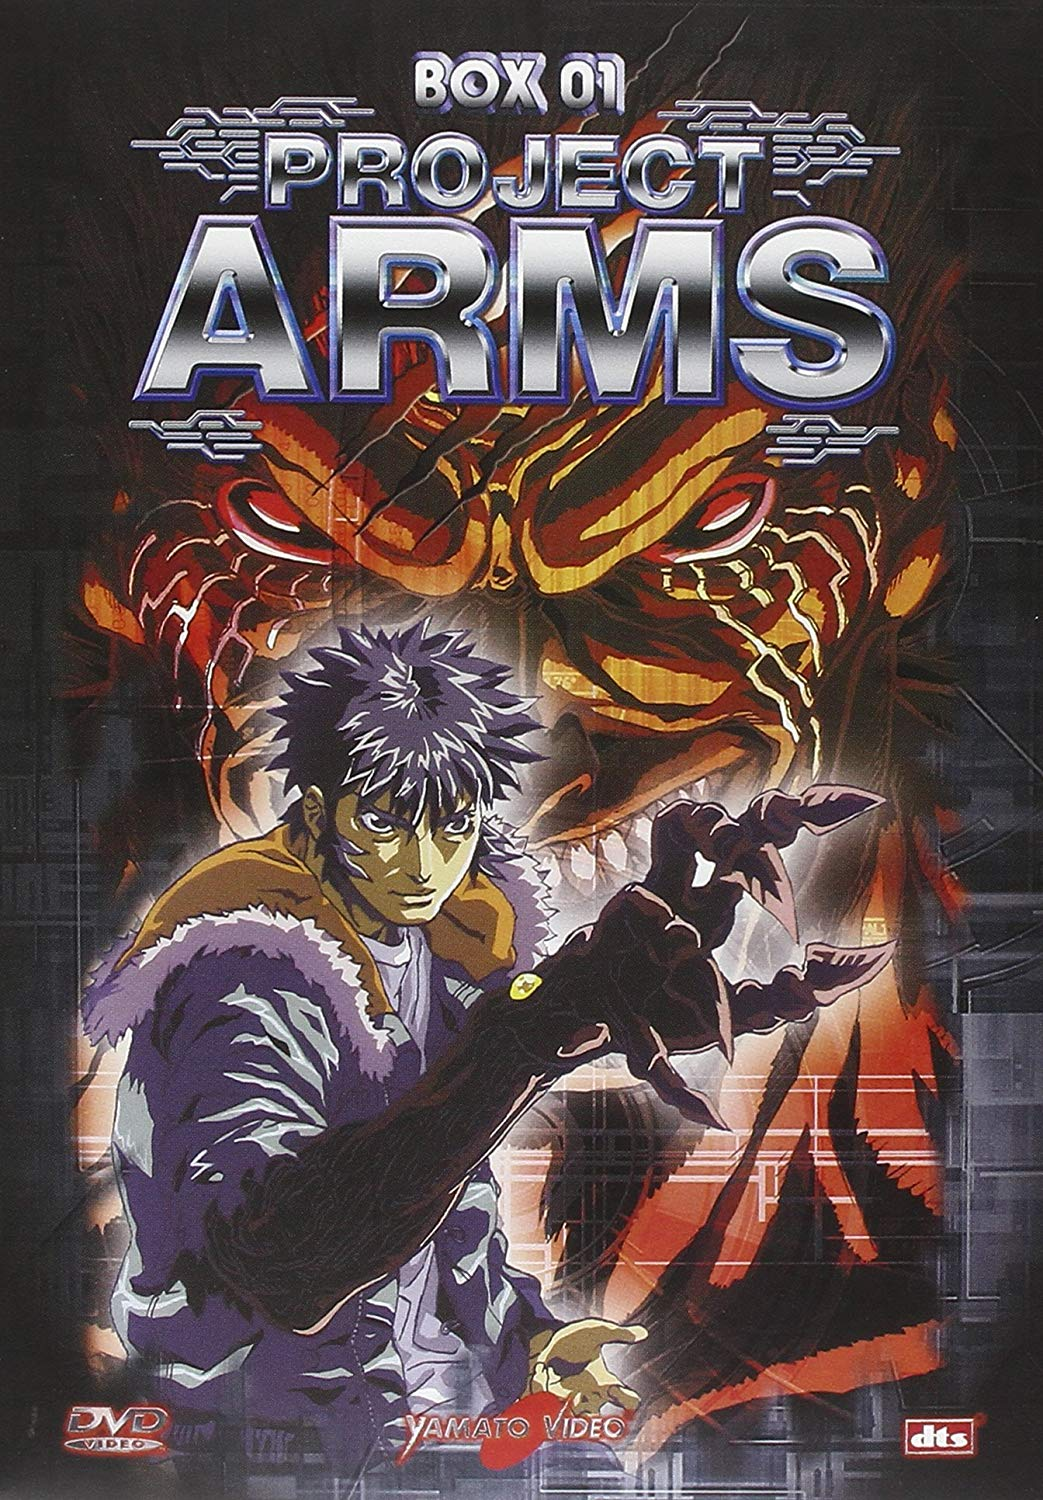 COF.PROJECT ARMS - BOX 01 (EPS 01-16) 4DVD (DVD)